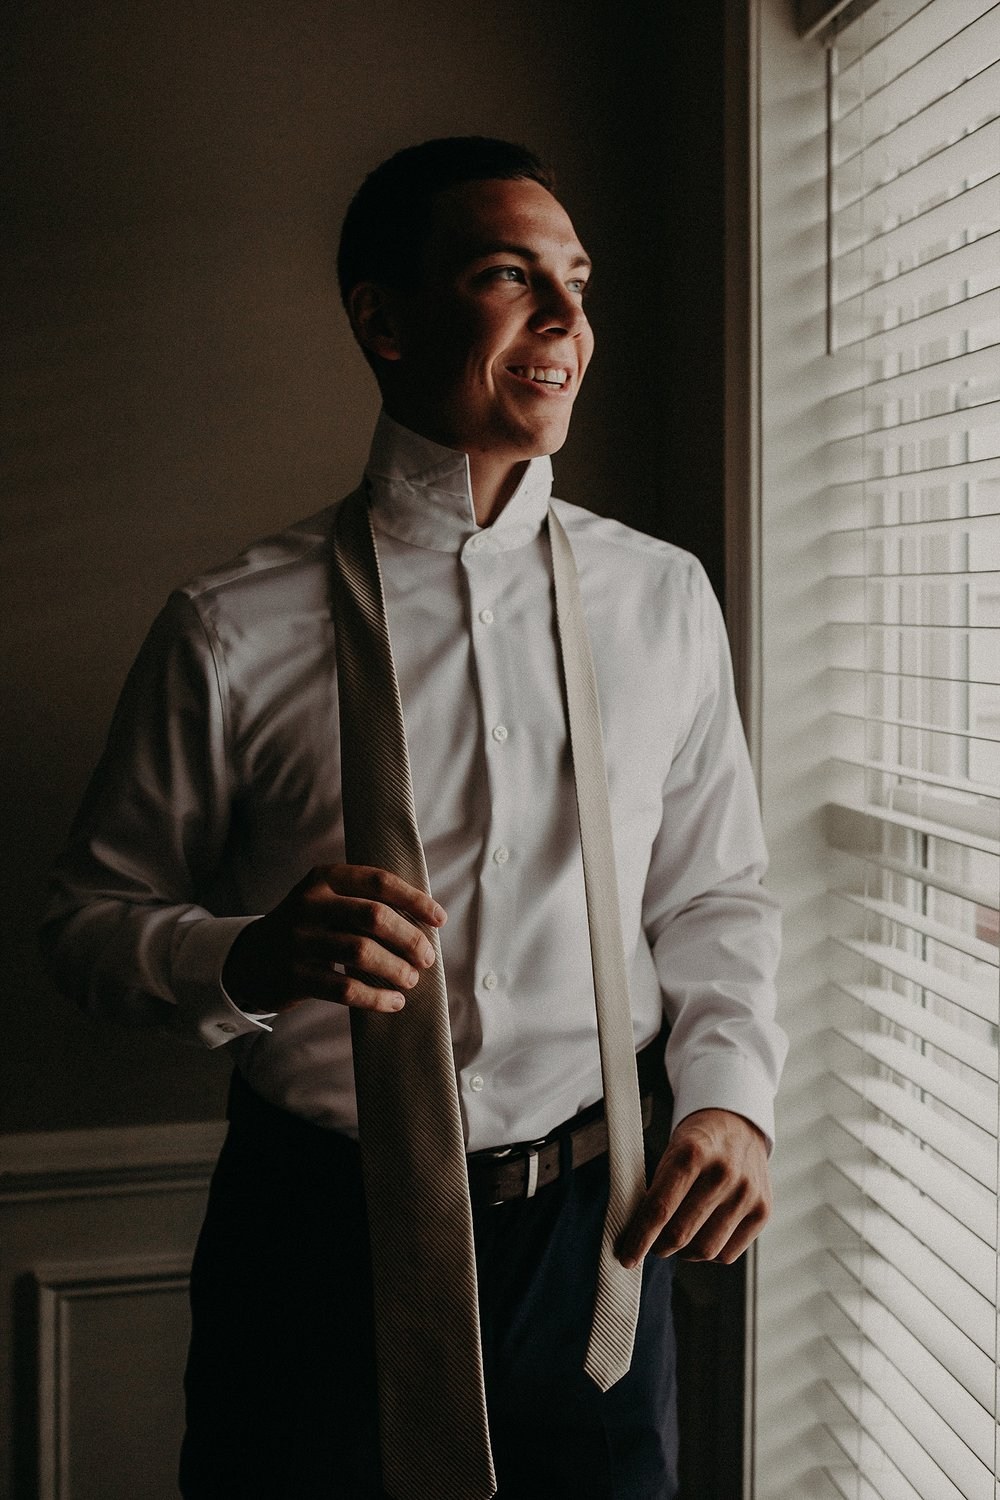 Smiling groom tying tie on wedding day